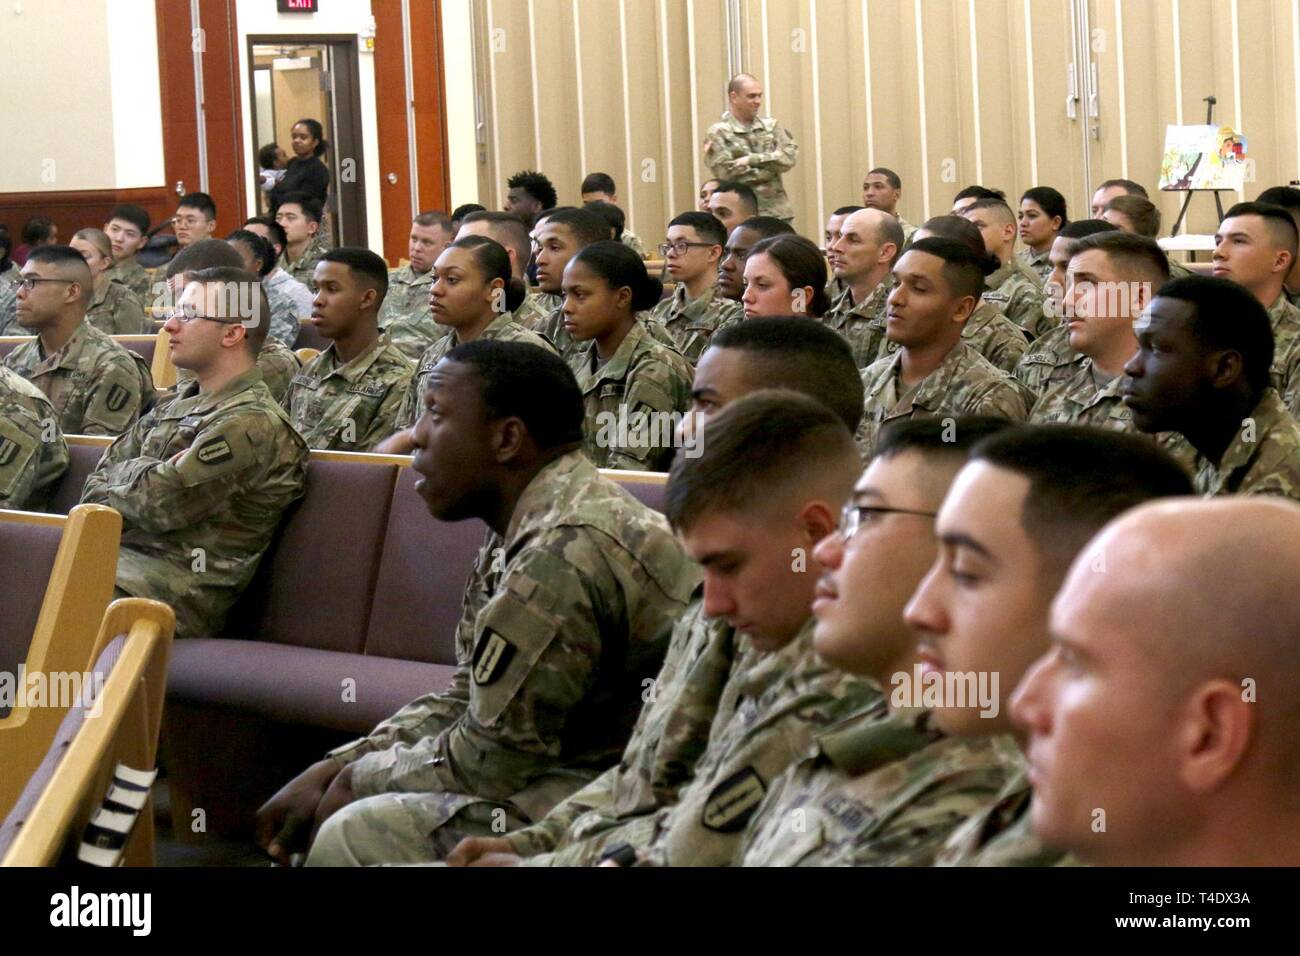 1st Signal Brigade, Eighth Army Soldiers listen to a speech on women's history March 25, 2019, Freedom Chapel, Camp Humphreys, Republic of Korea. The theme of the 2019 Women's History Month is Visionary Women: Champions of Peace & Nonviolence. - Stock Image